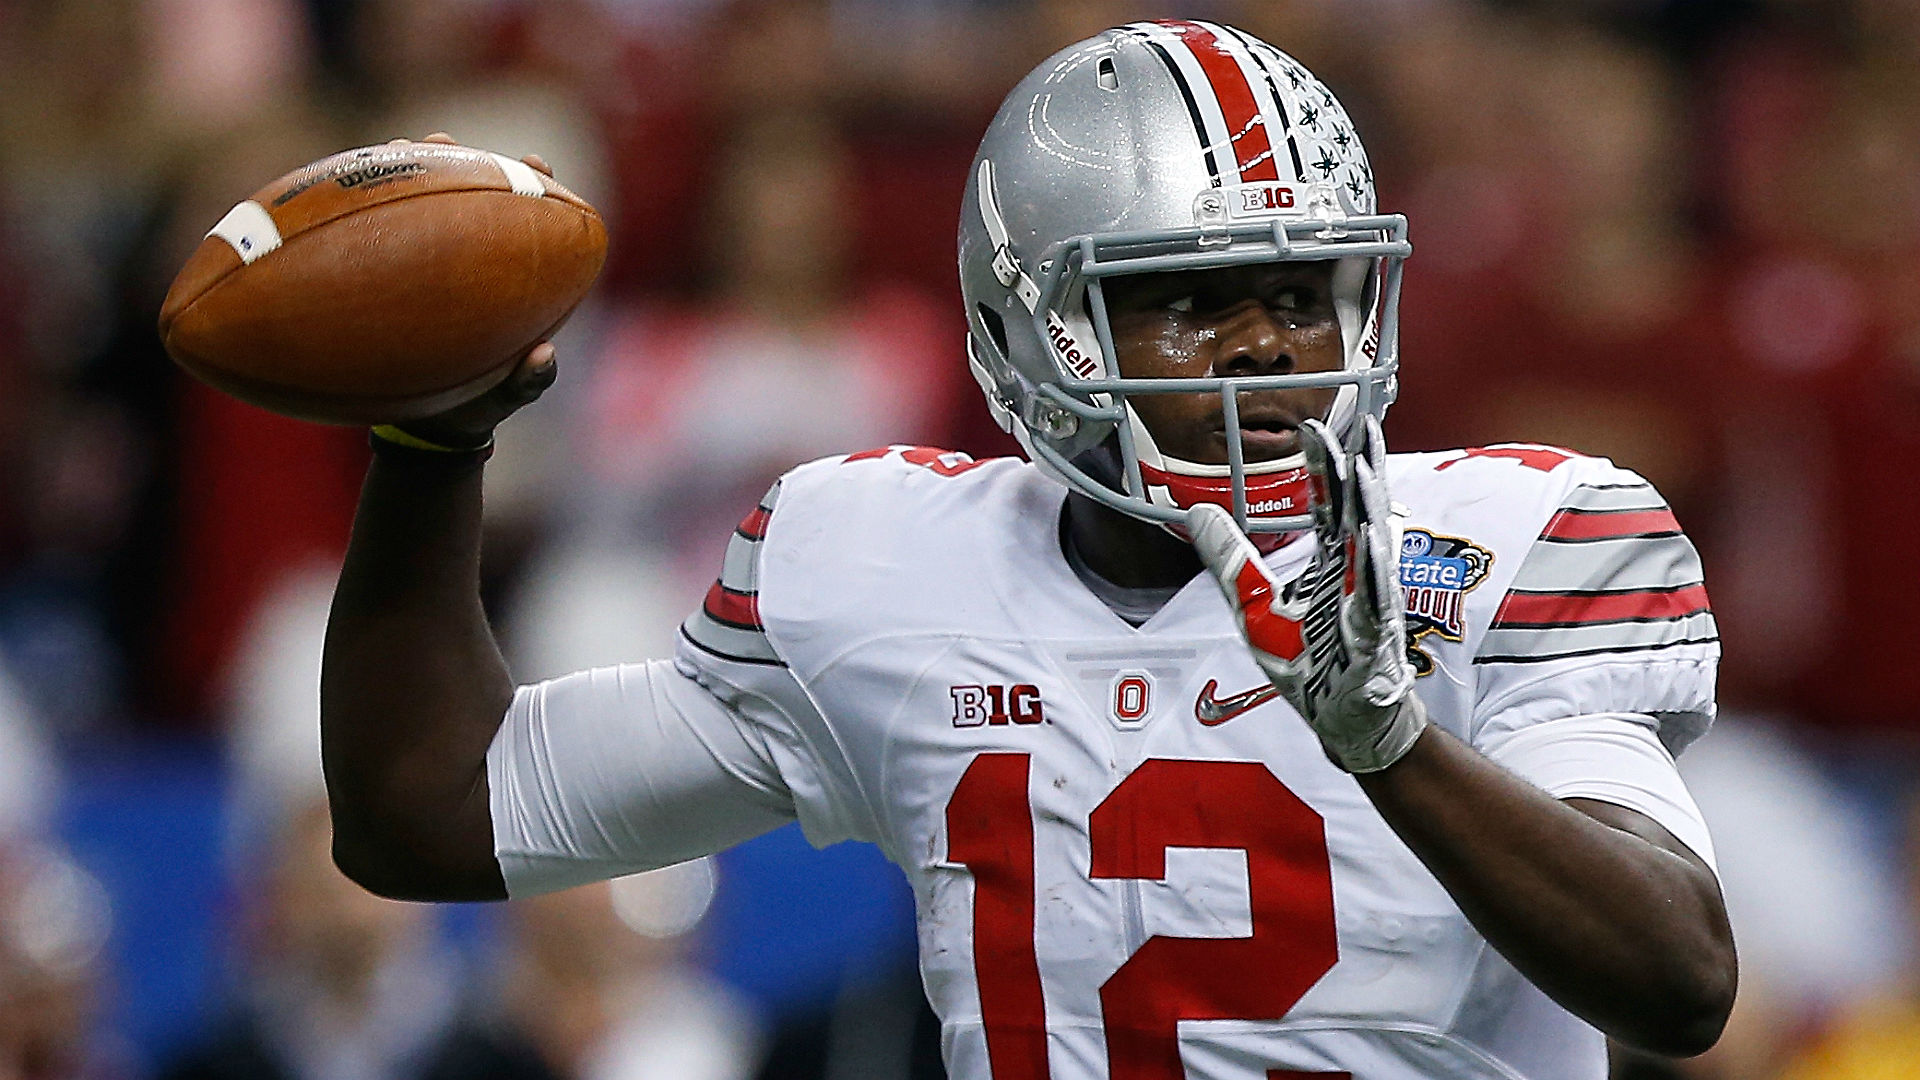 Ohio State vs. Oregon betting lines and pick – Early money on underdog